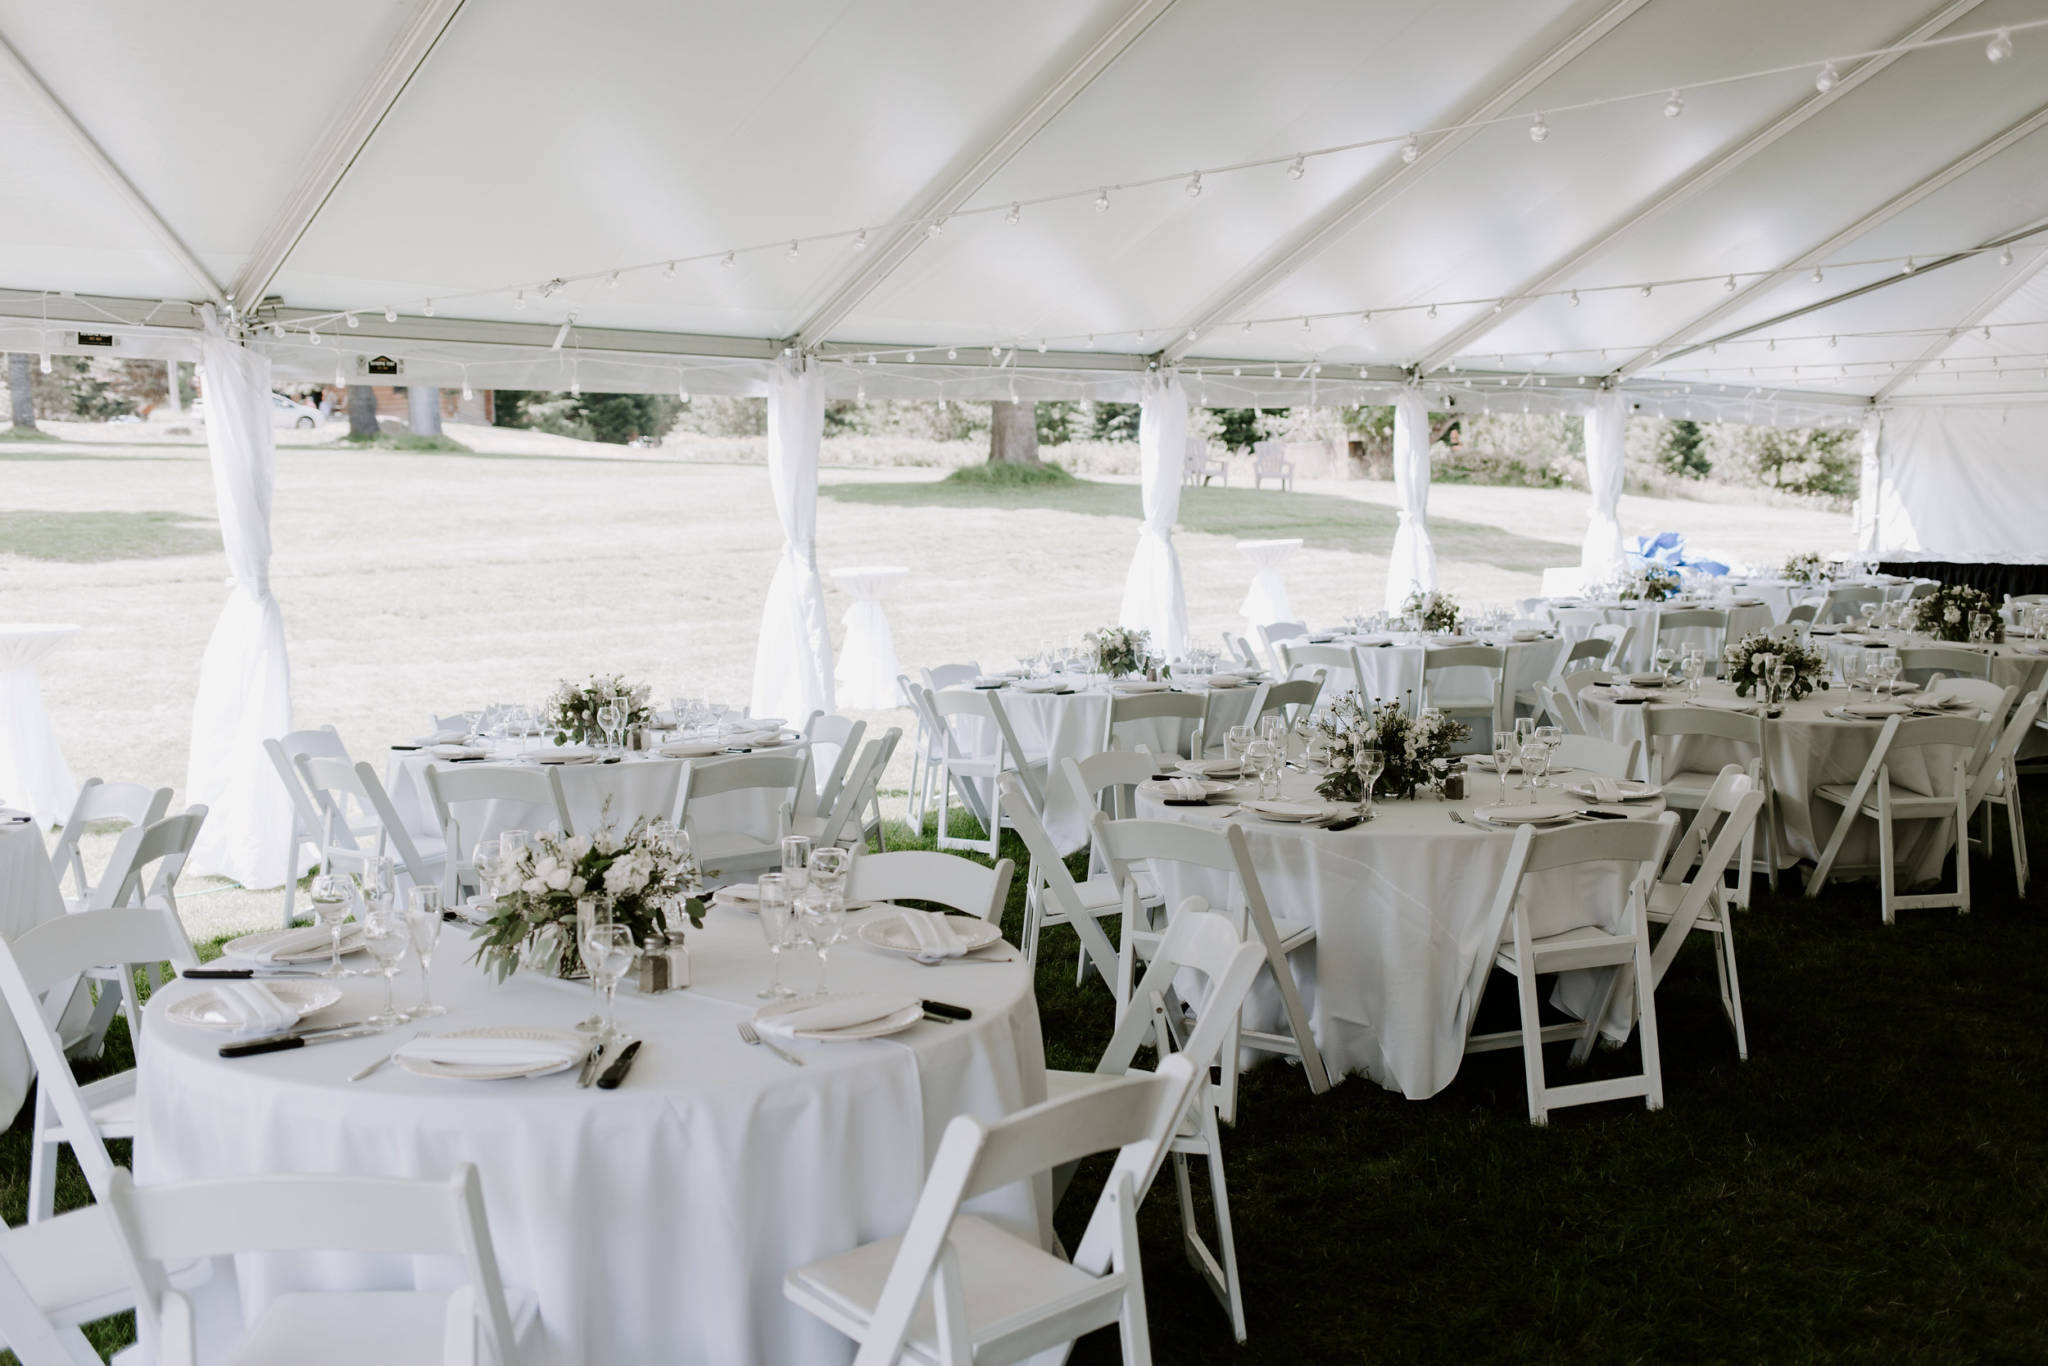 Wedding Tent with Tables Empty Outdoors